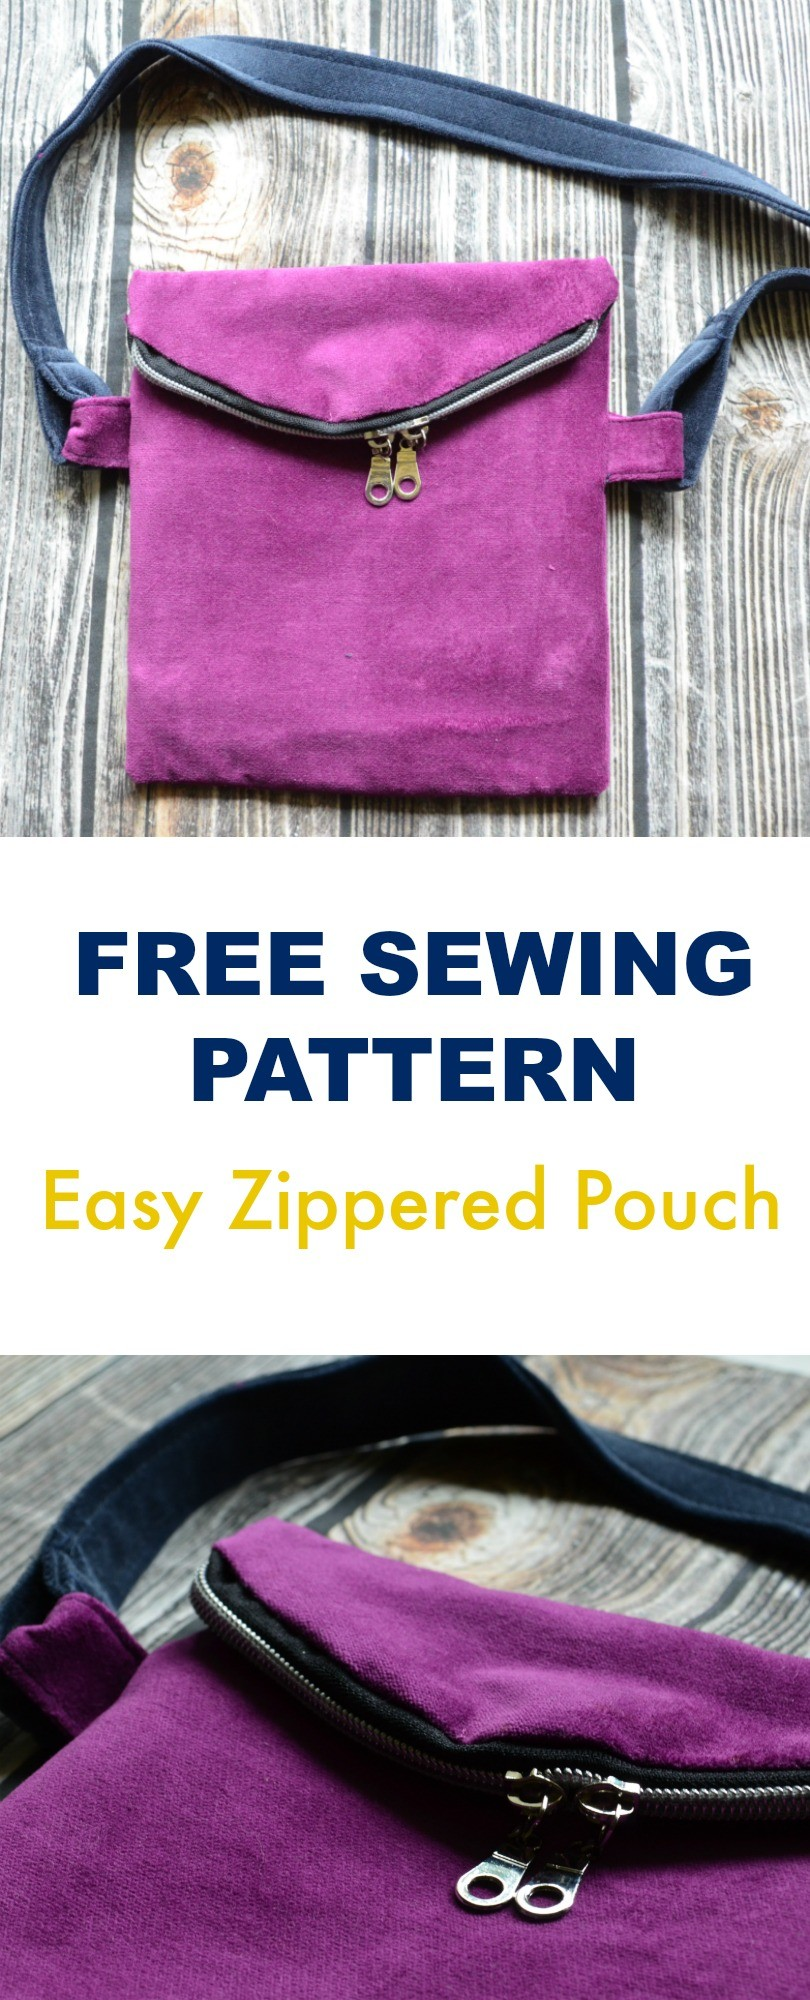 Free Pattern Alert 1 Hour Sewing Project On The Cutting Floor Printable Pdf Sewing Patterns